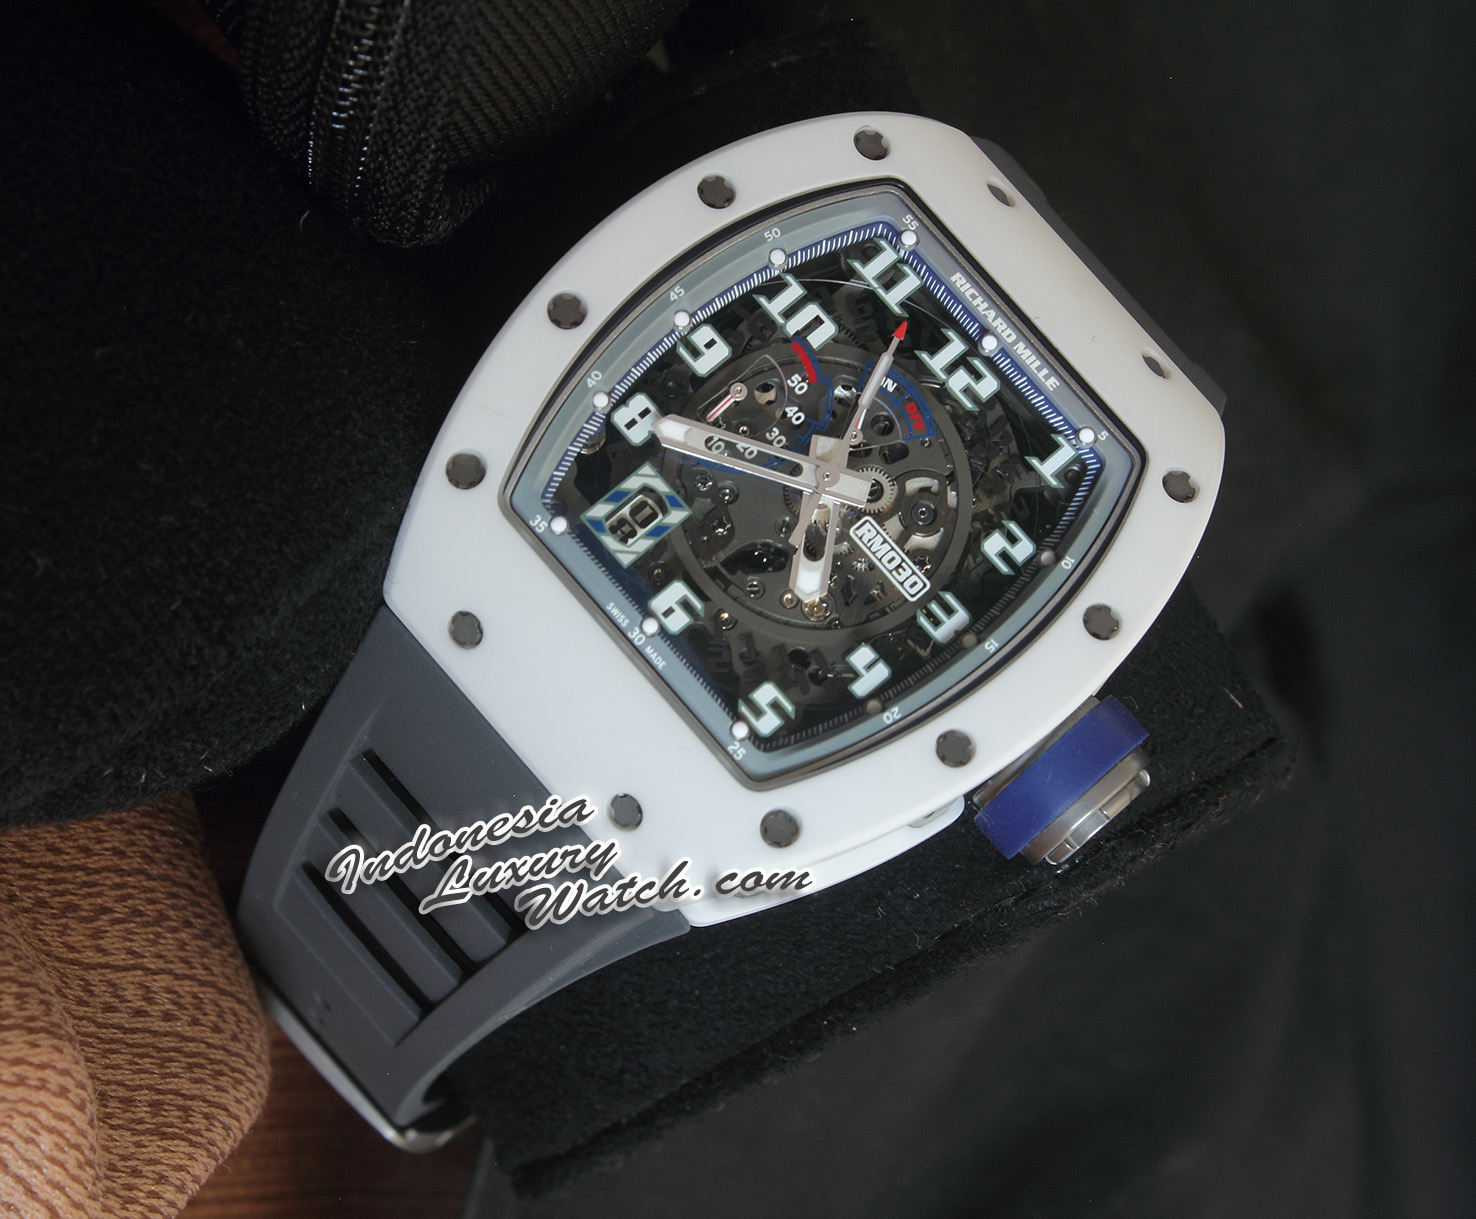 Richard Mille 030 Limited Edition 50pcs Polo St.Tropez – White Rush